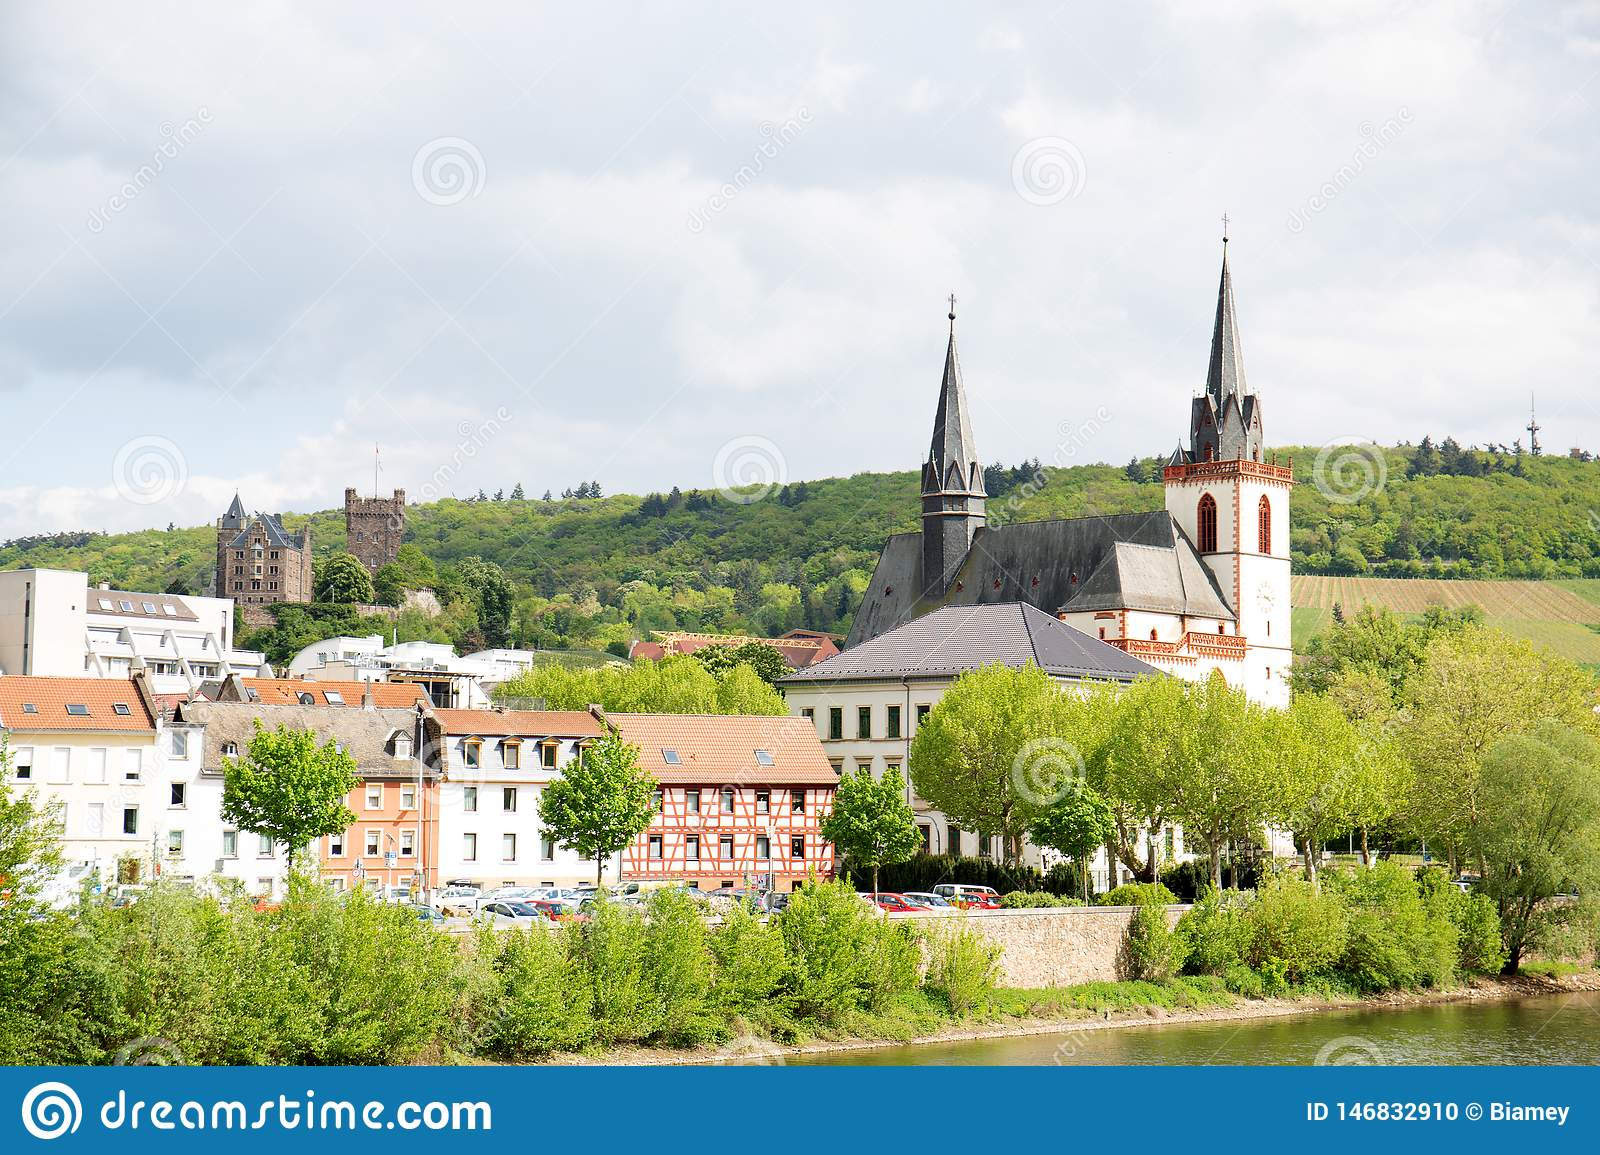 Closer view on the church steeple and the building exterior in bingen am main in hessen germany